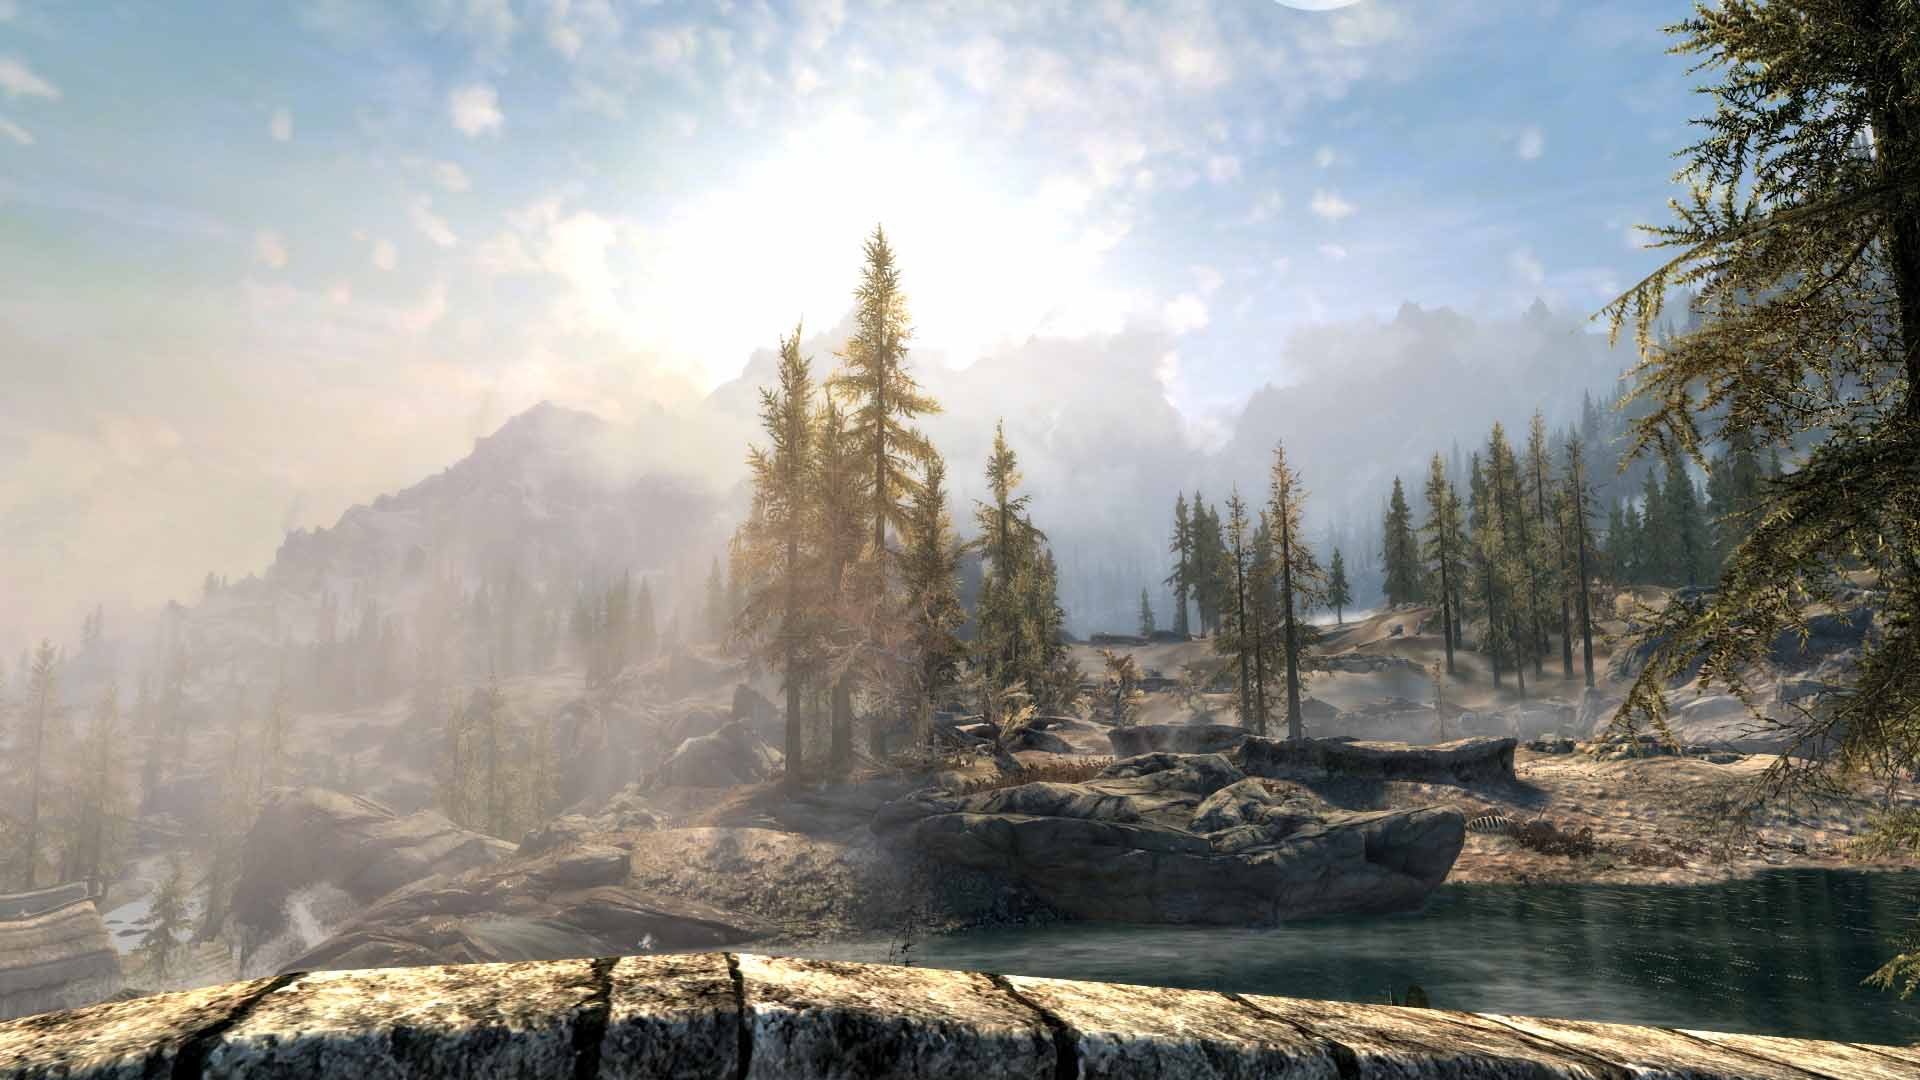 Skyrim SE Obsidian Weathers + Realistic Water Two No ENB